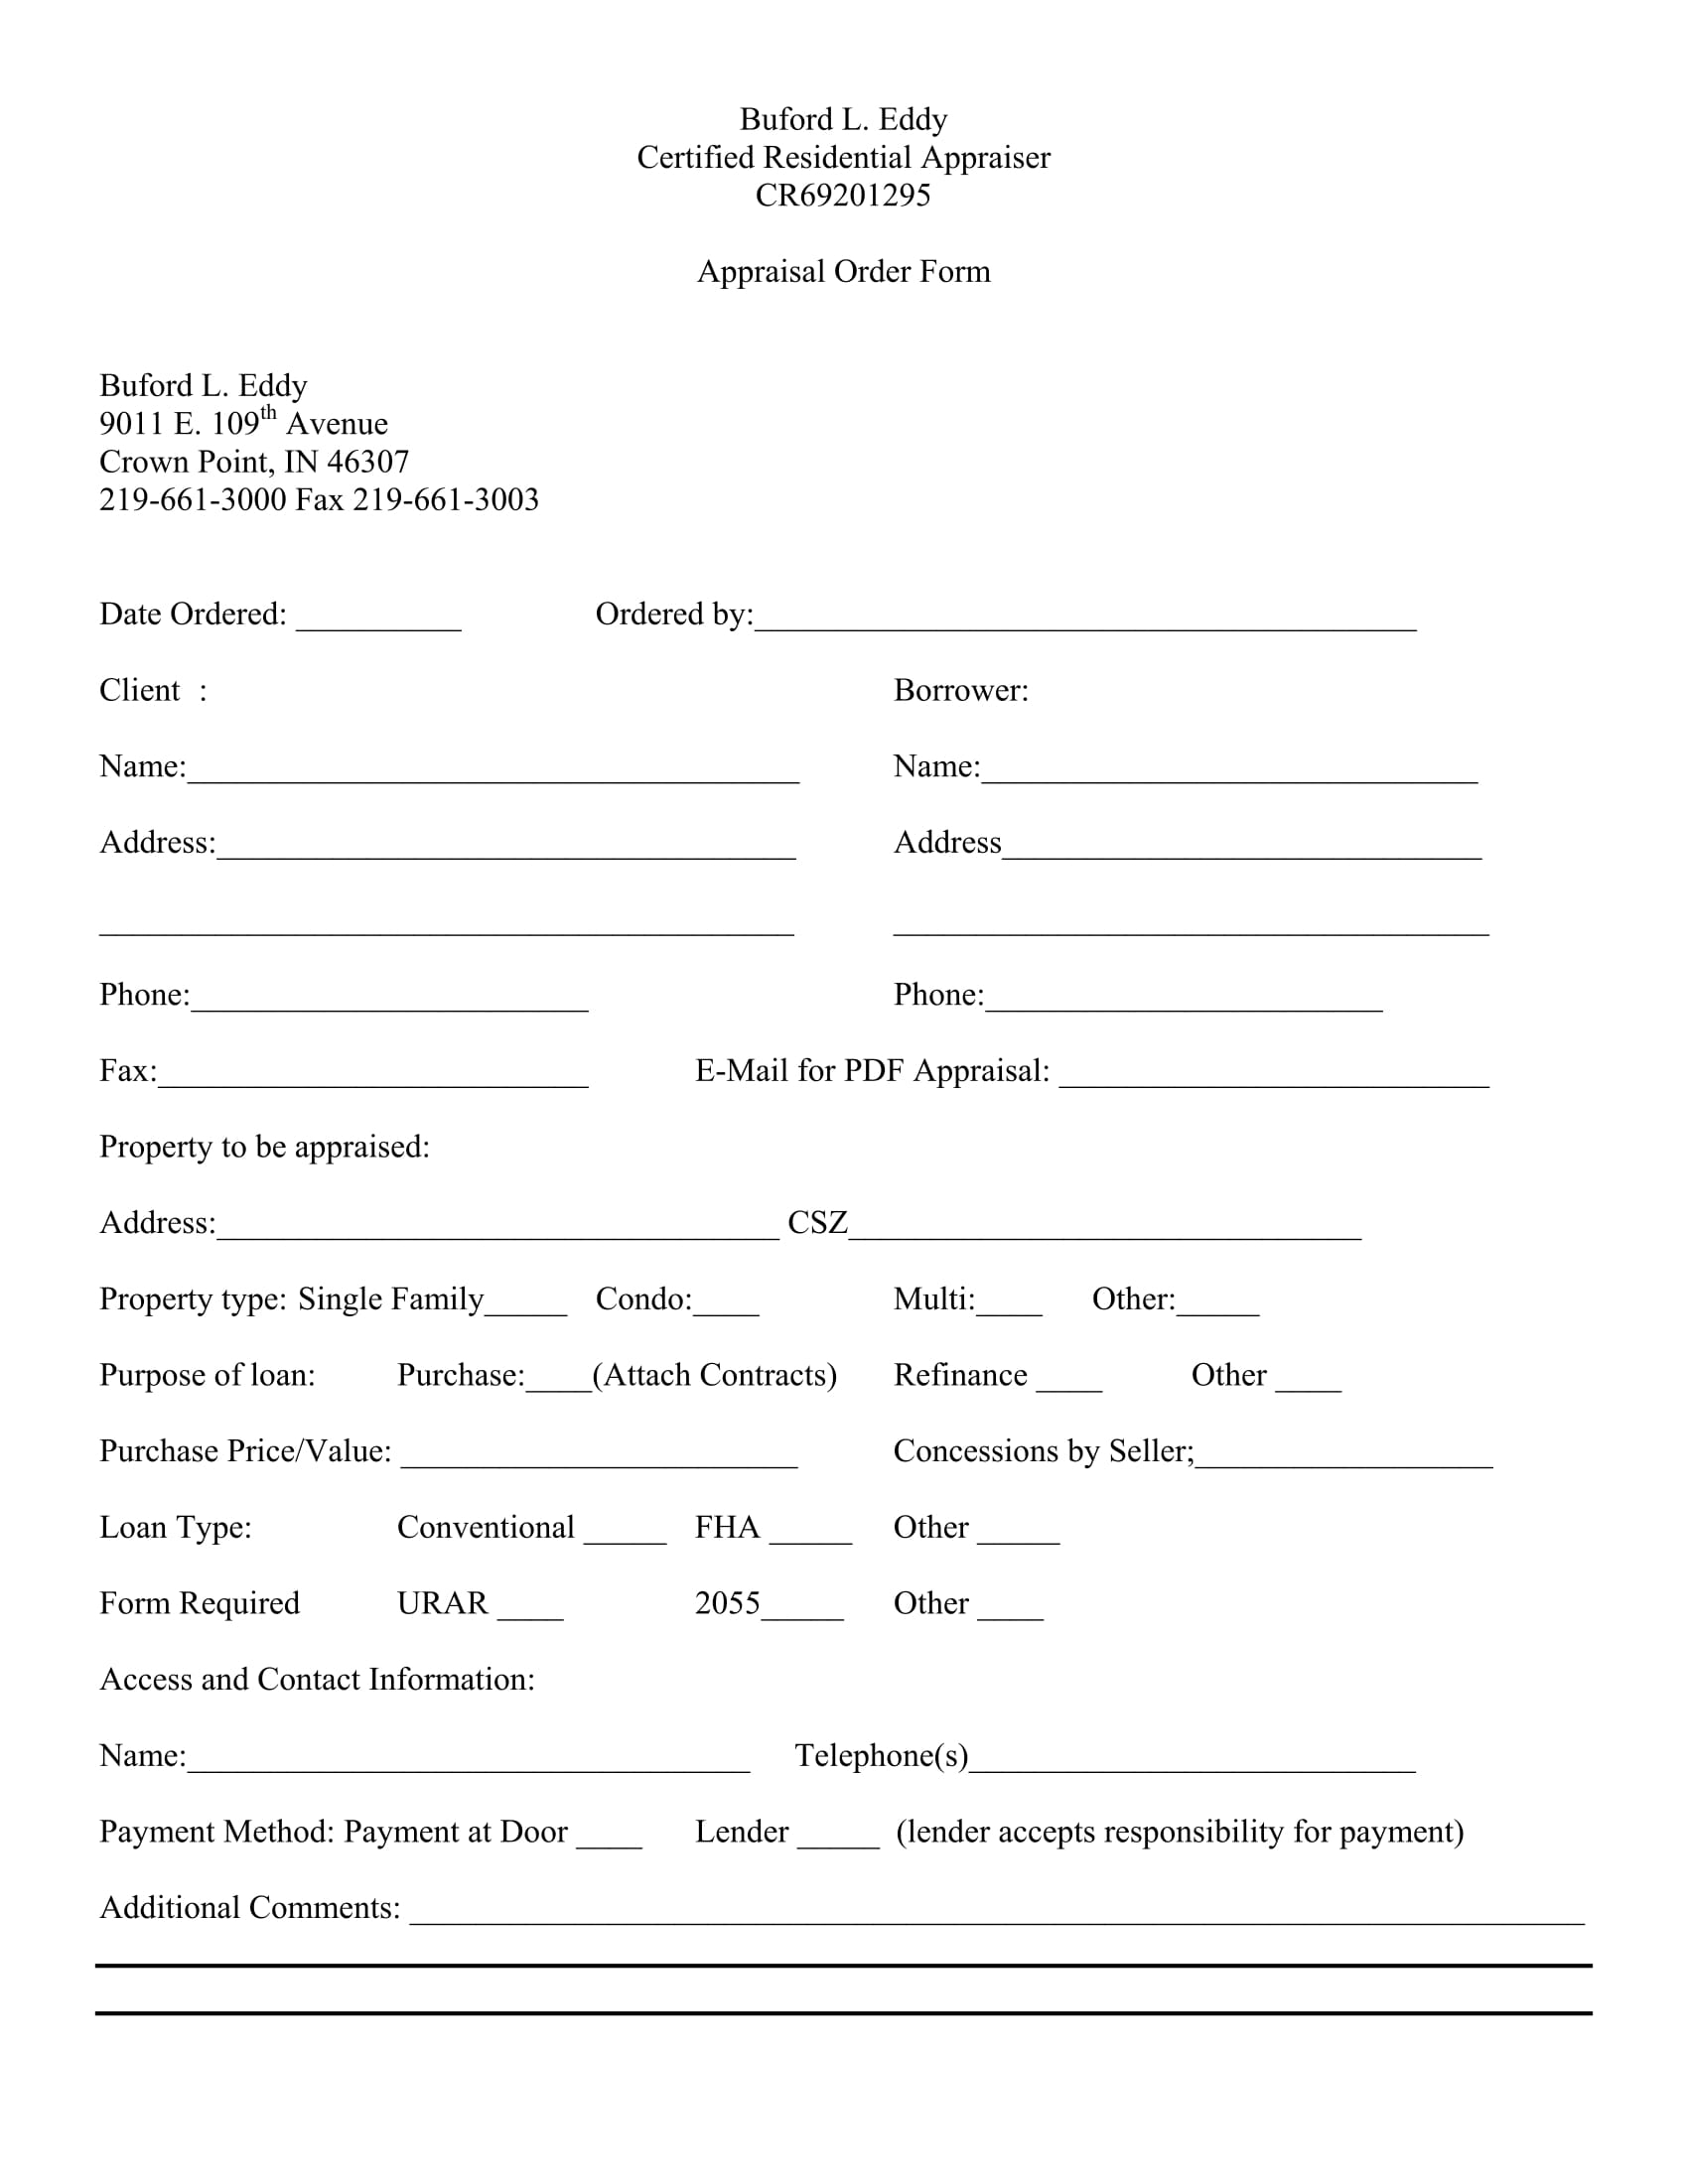 real estate appraisal order form 1